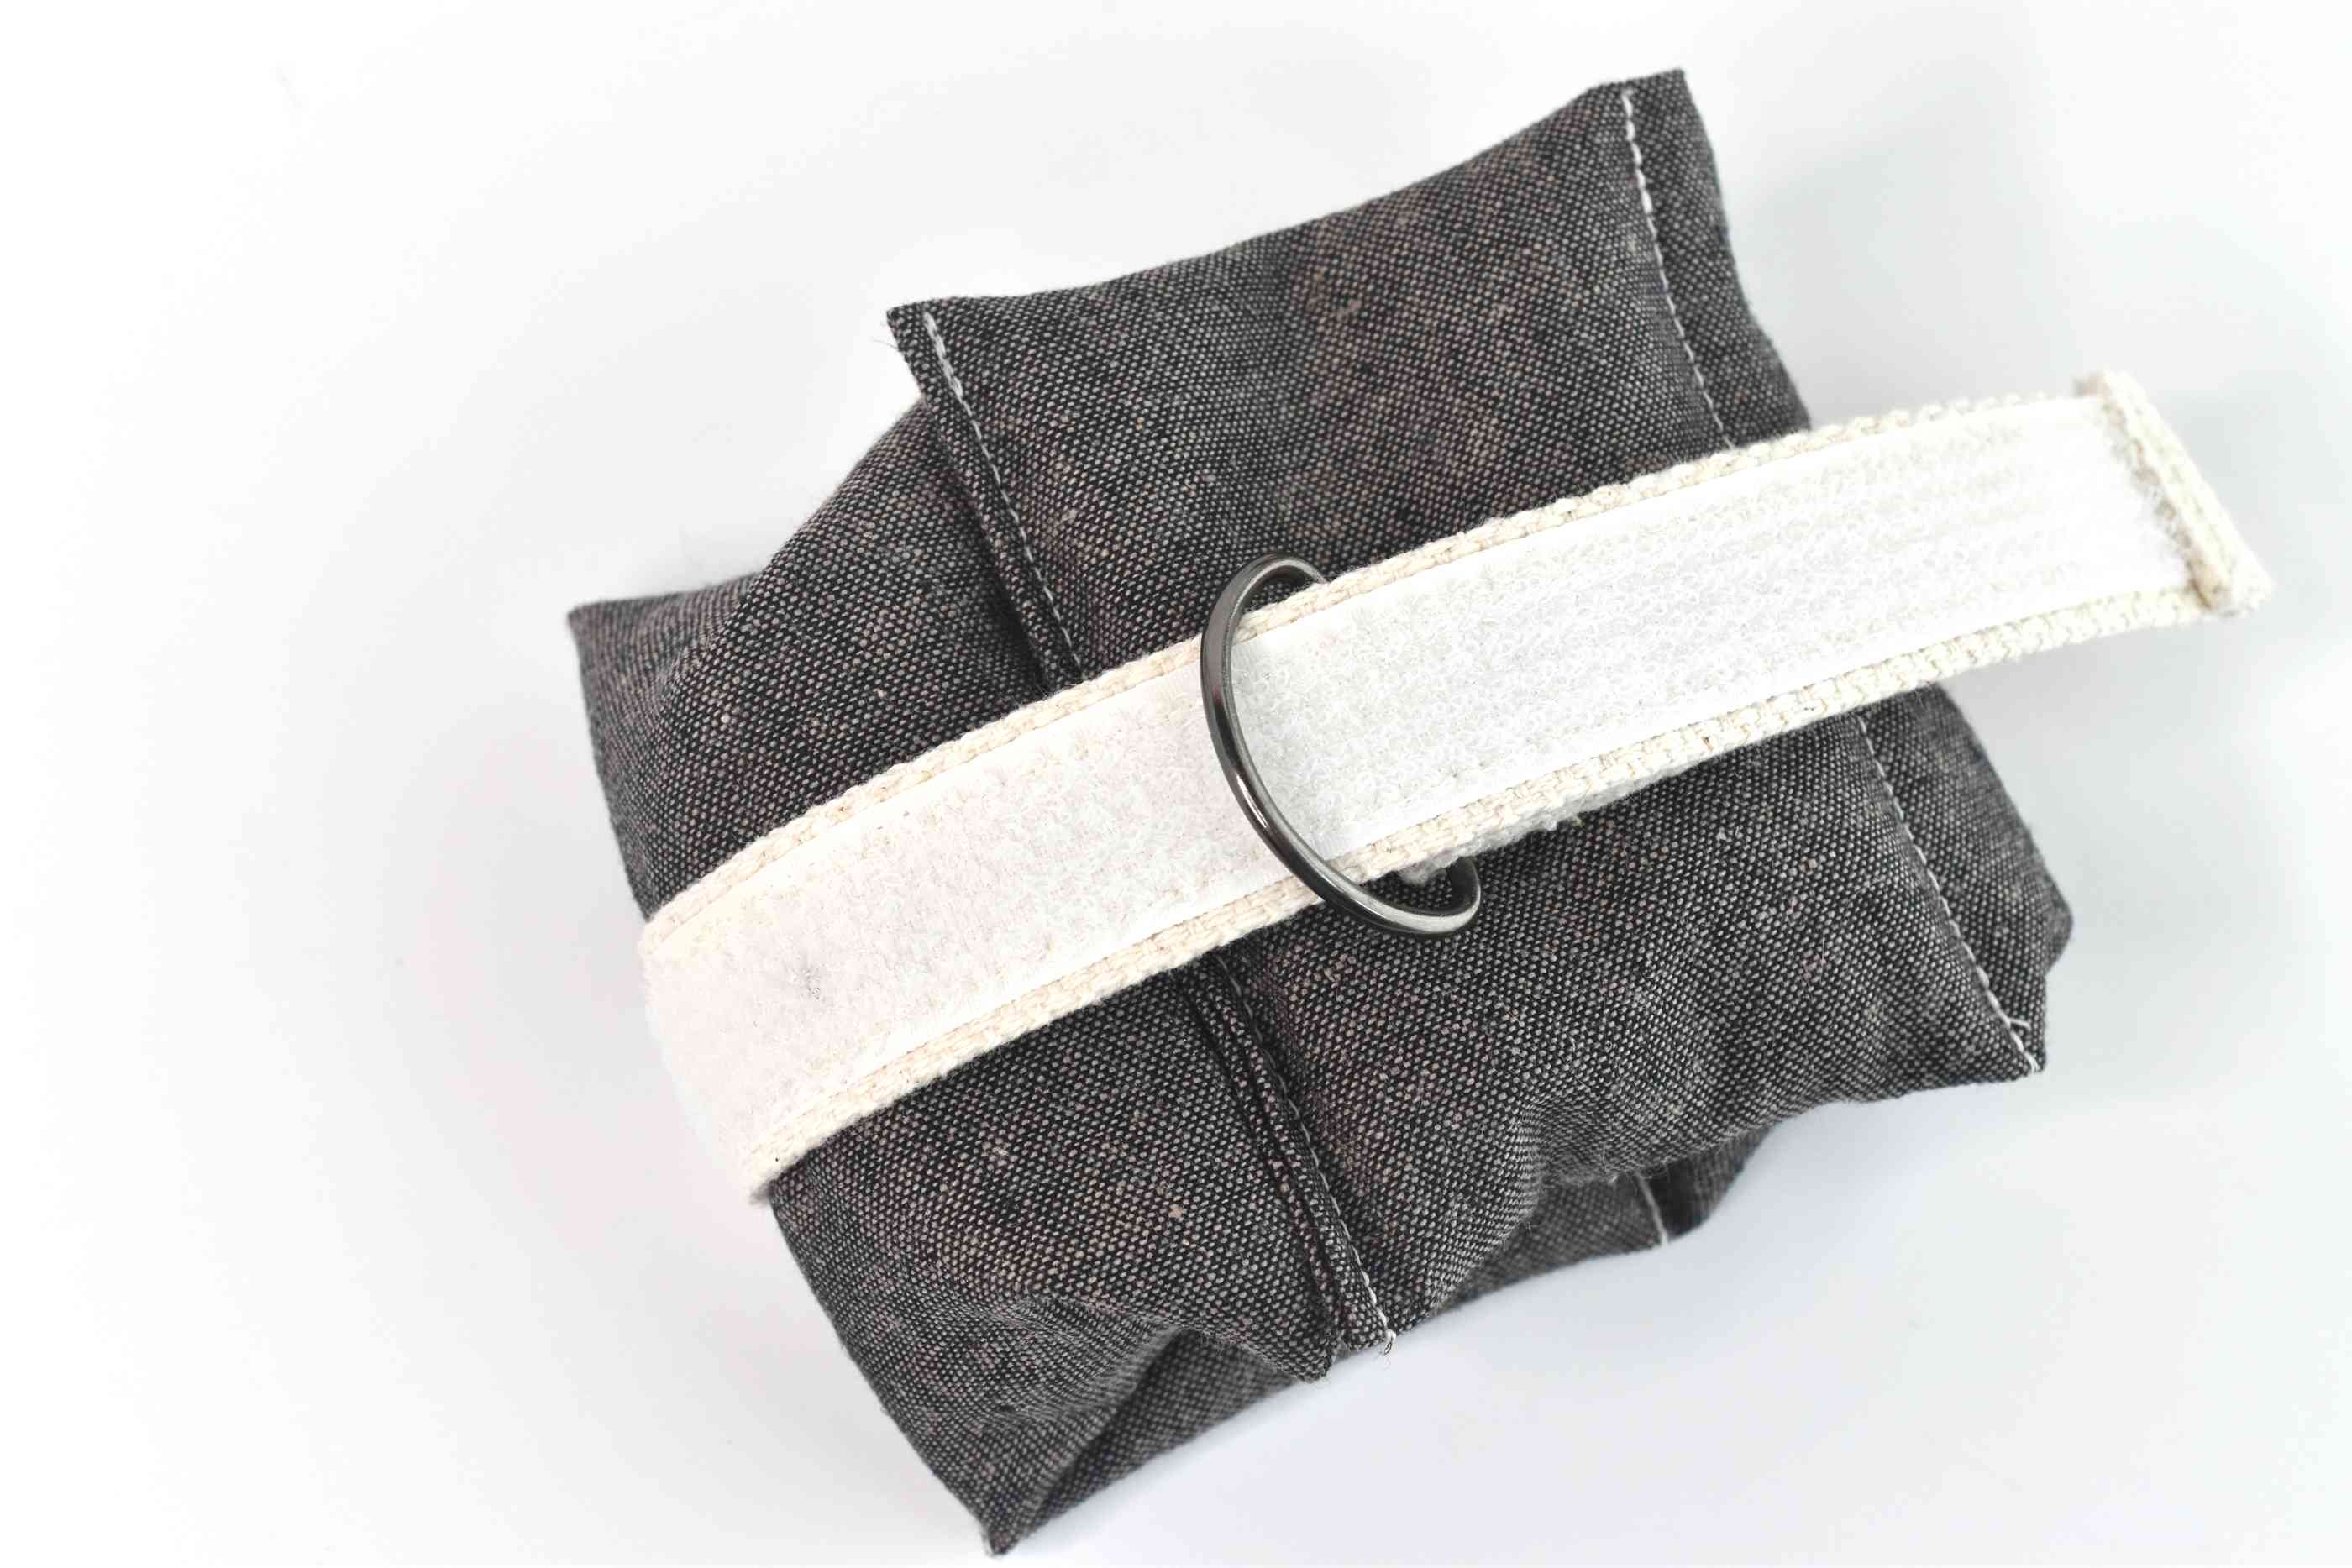 Securing the DIY Wrist and Ankle Weights